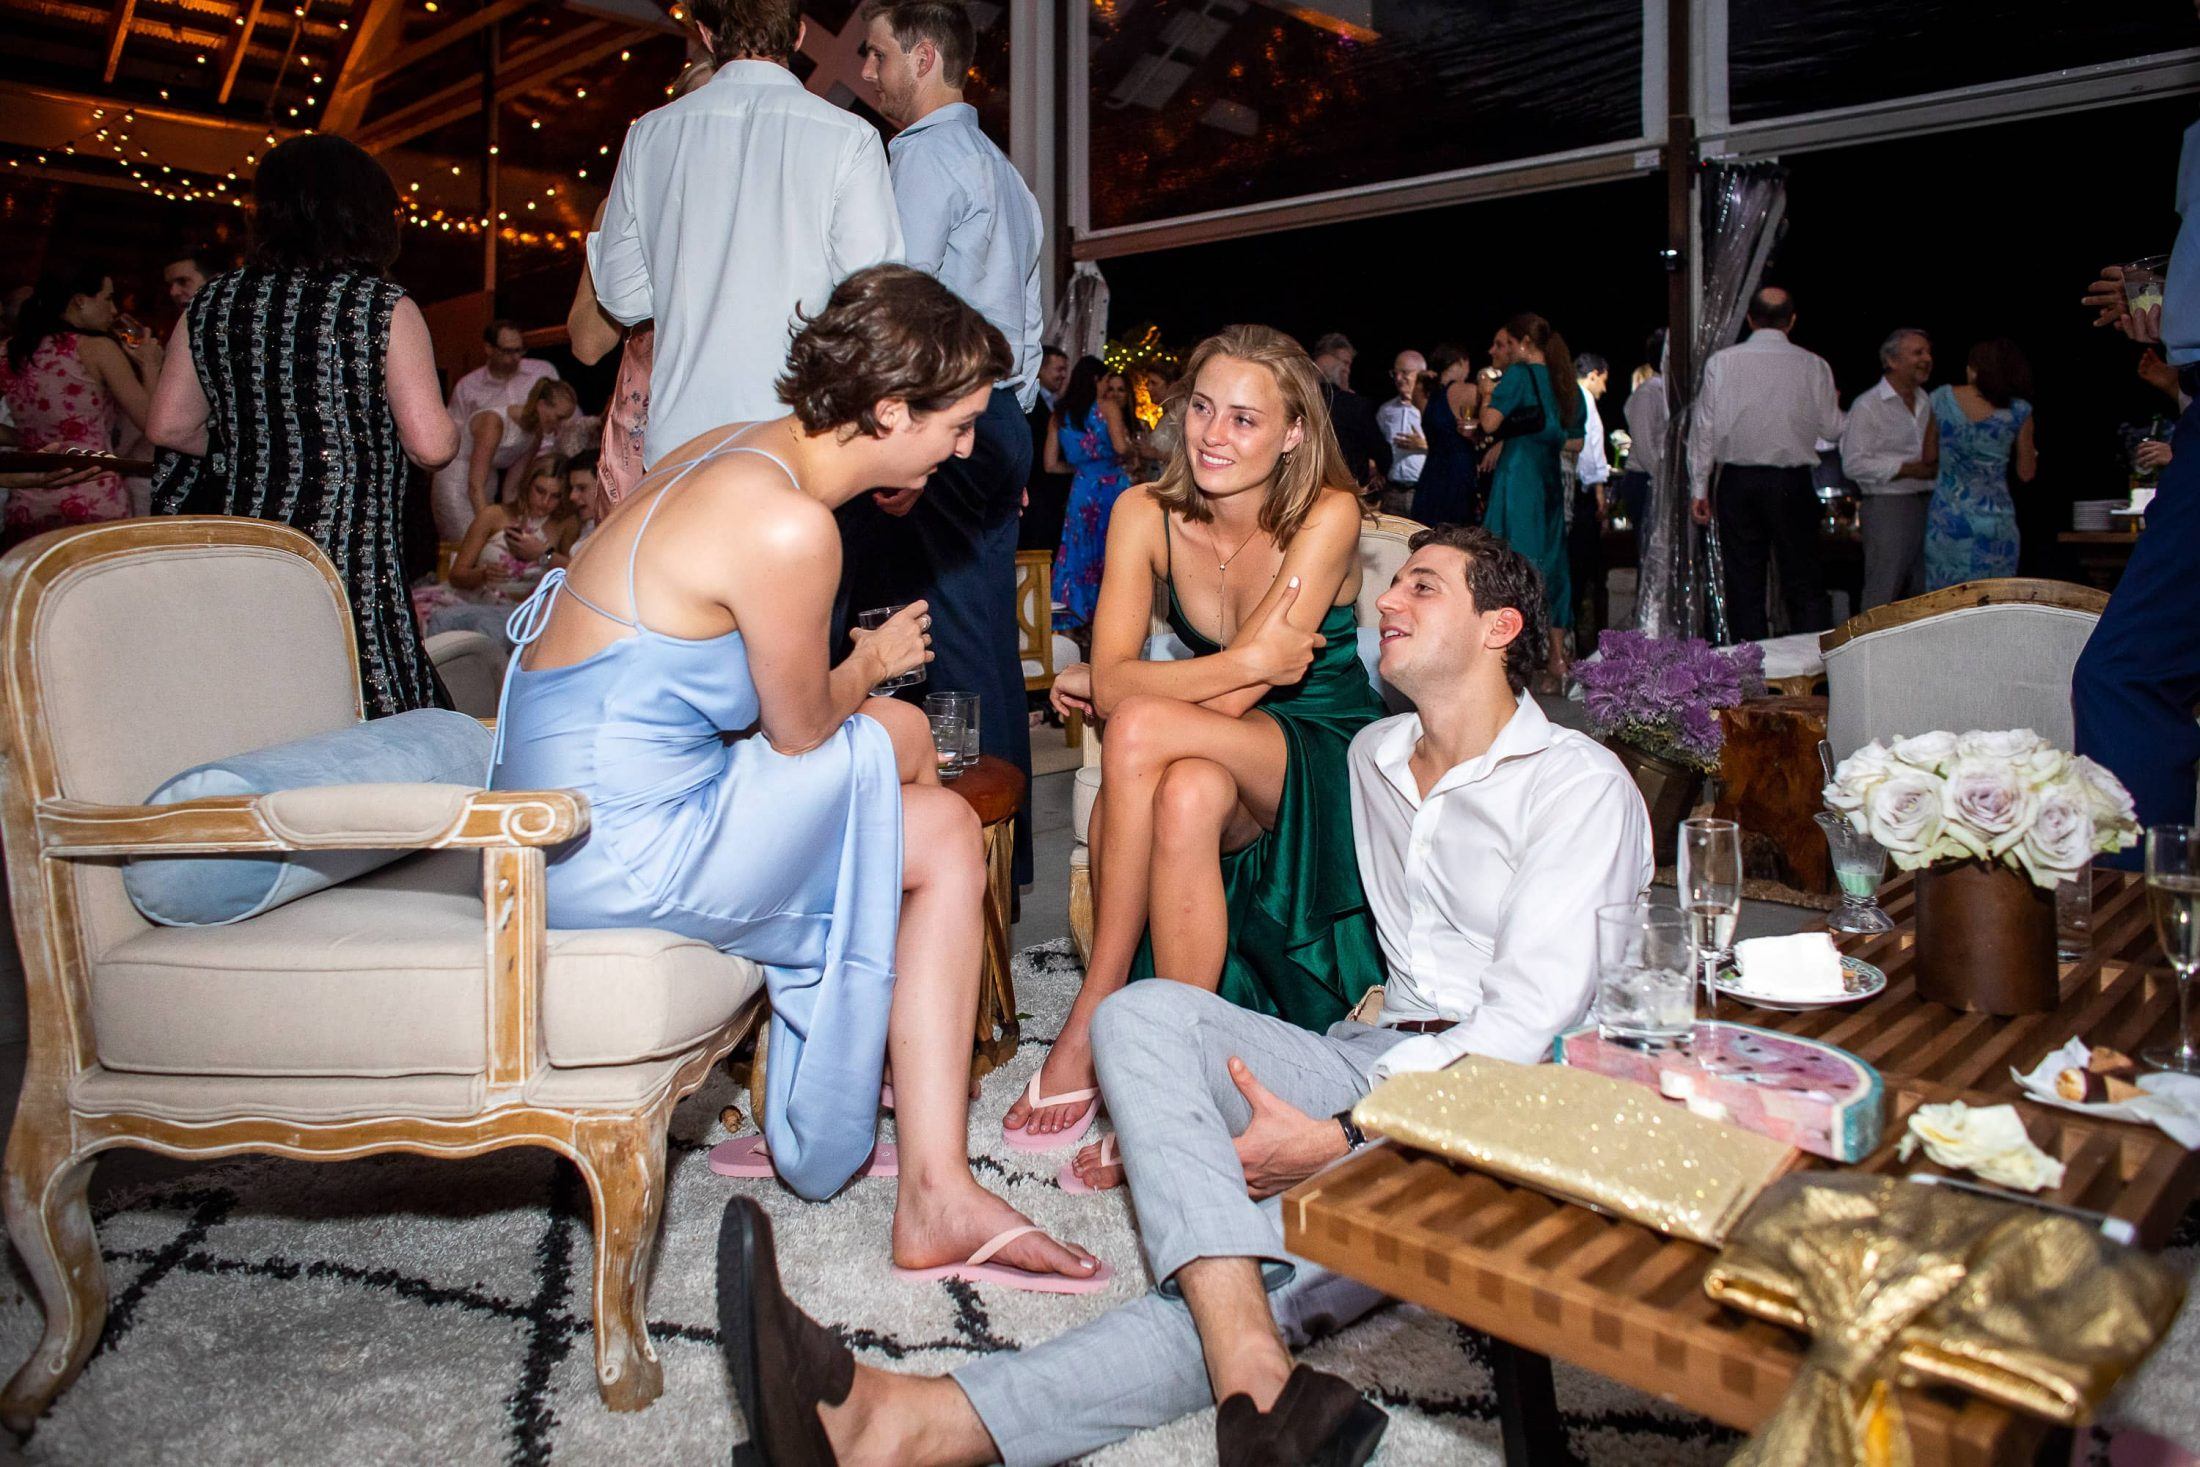 Guests with complimentary flip-flops during reception at this Hamptons wedding weekend held at The Parrish Museum | Photo by Roey Yohai Studio